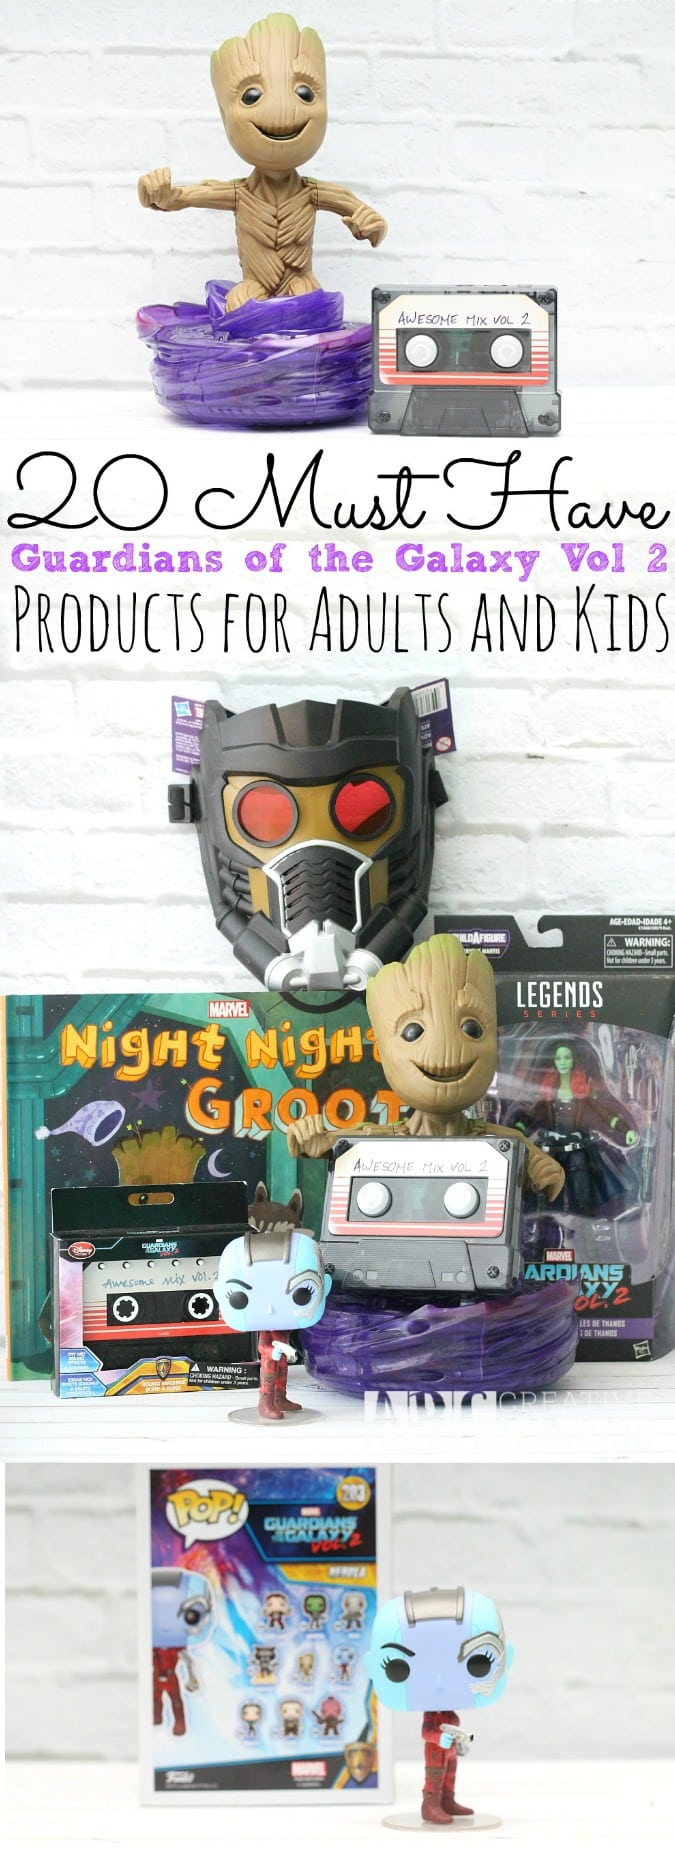 Guardians of the Galaxy Vol 2 Toys for Kids